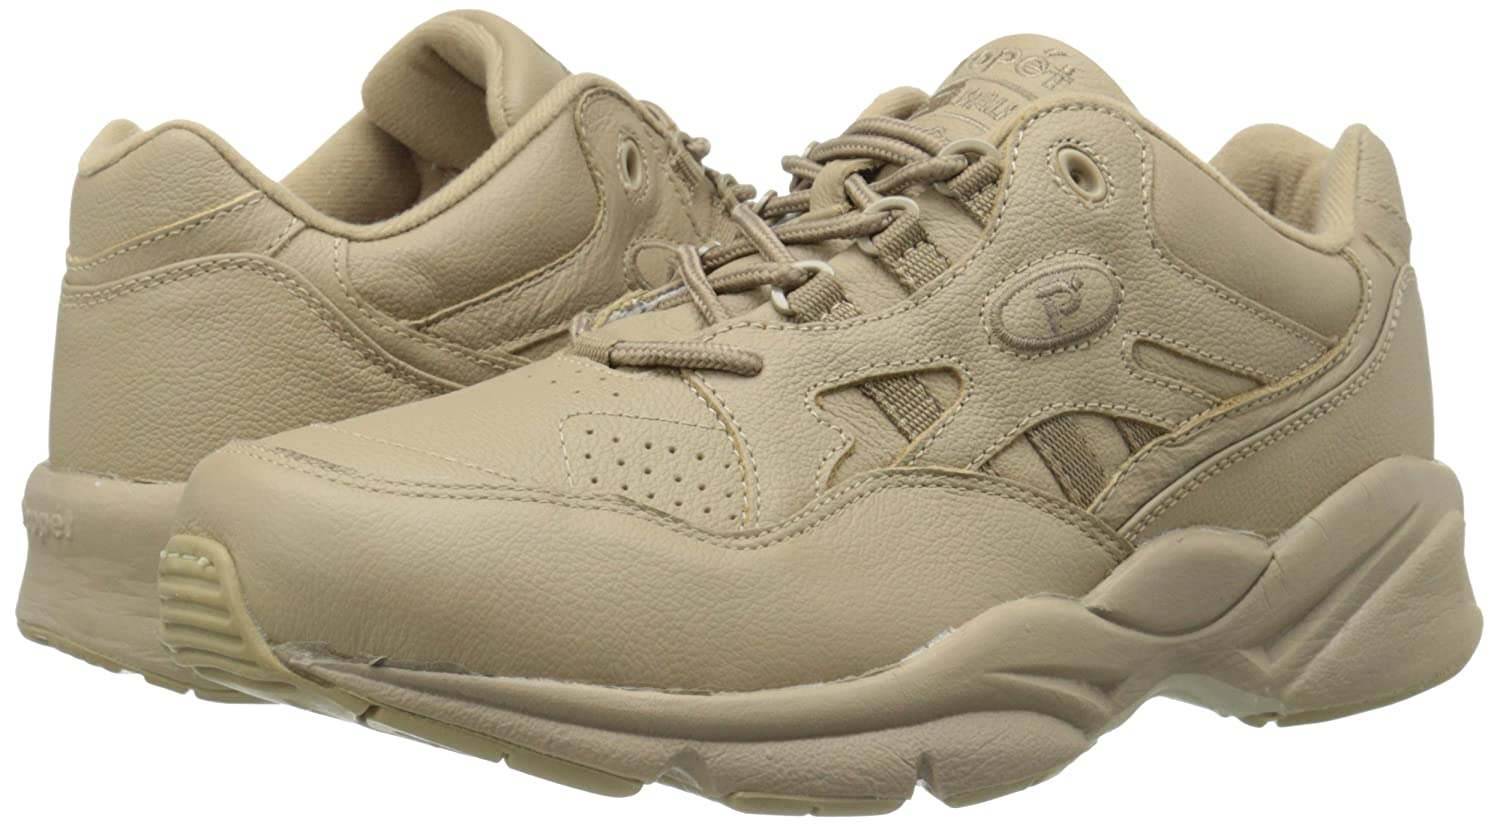 Propet Mens Stability Athletic Walking Shoe